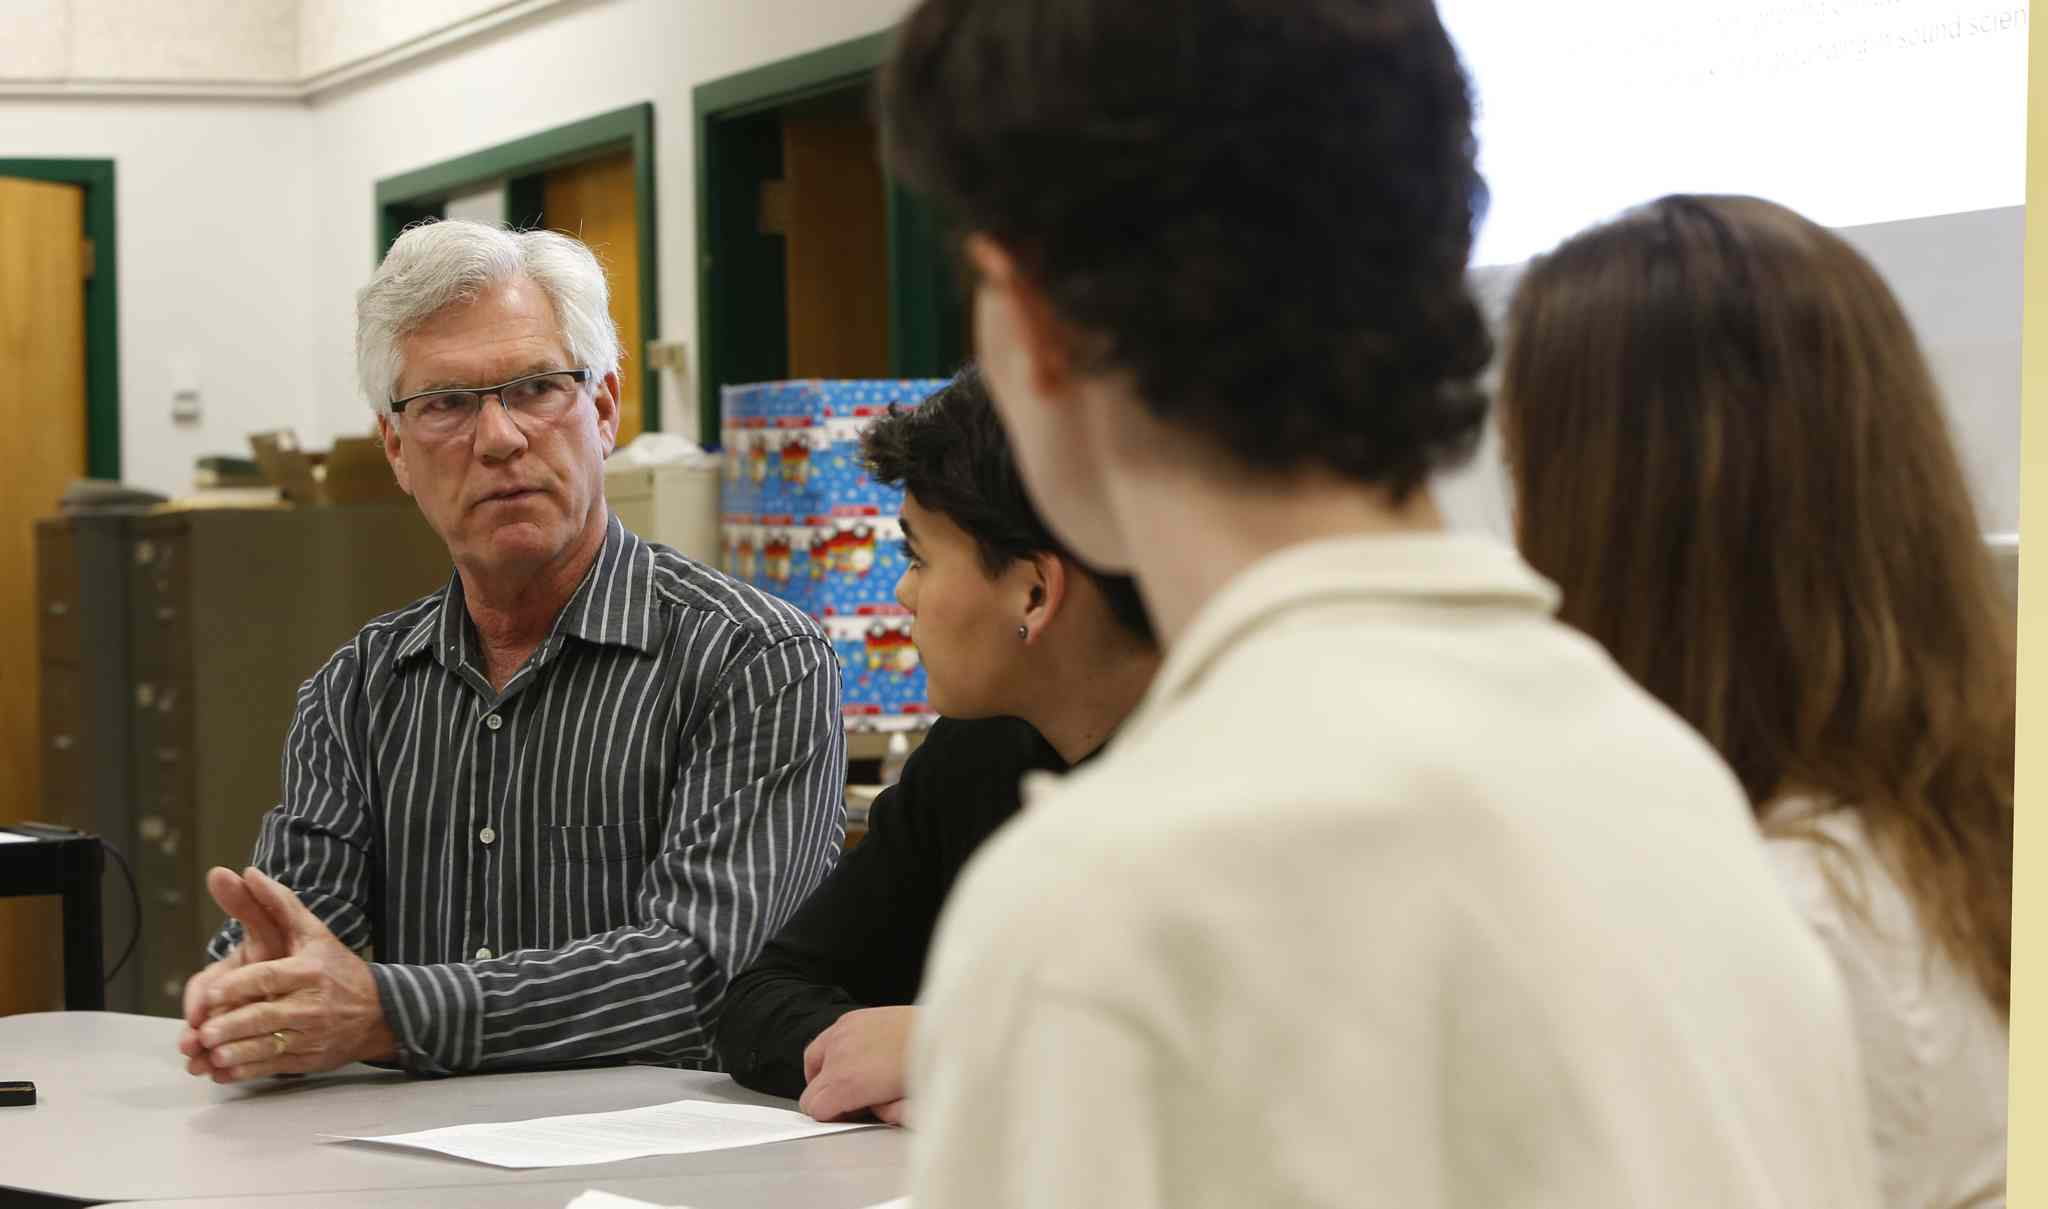 Jim Carr, Canadian Minister of Natural Resources, meets with the Kelvin High School Environmental Action Committee to discuss Canada's climate and environmental policy Friday morning.